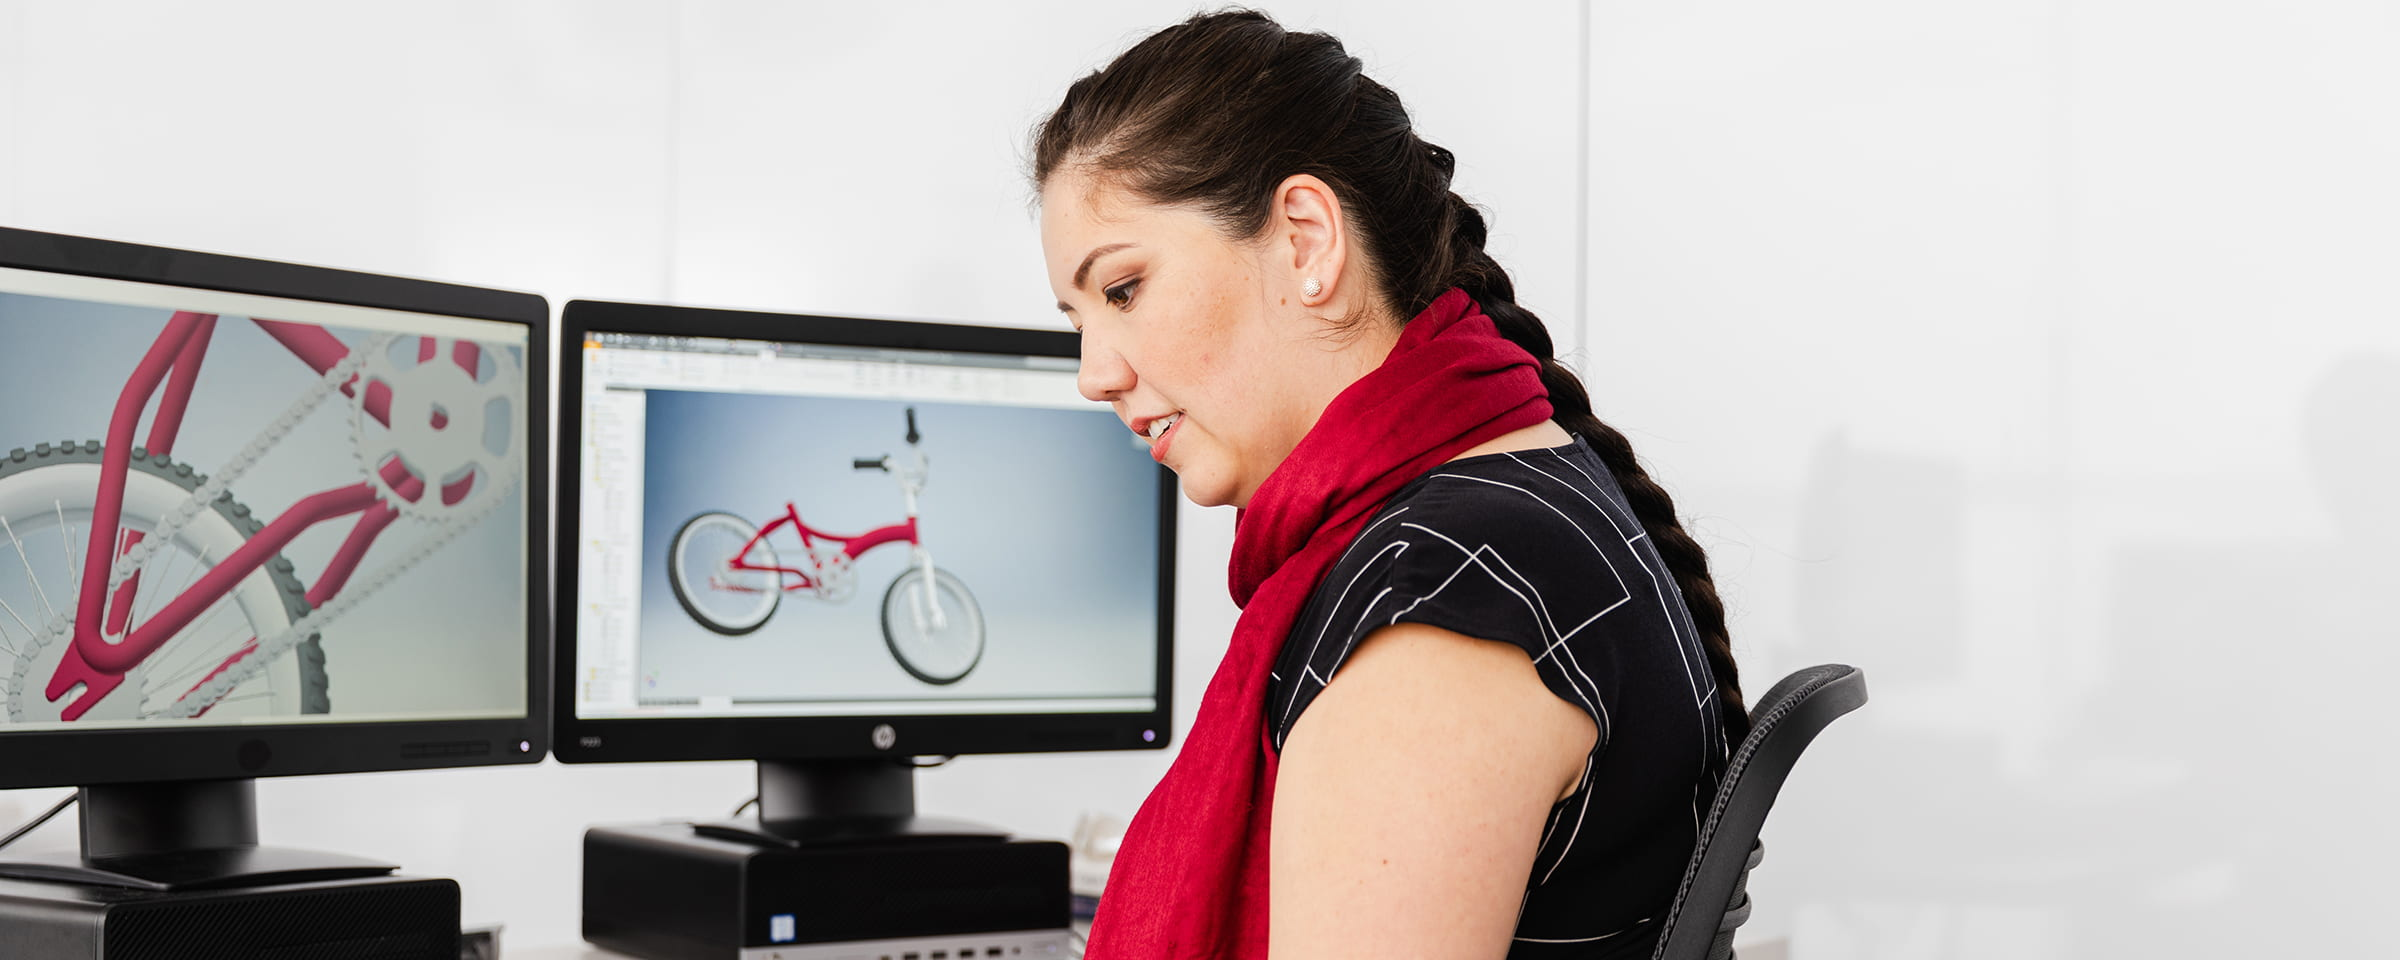 Computer Aided Design and Drafting, a part-time, online program offered by RRC